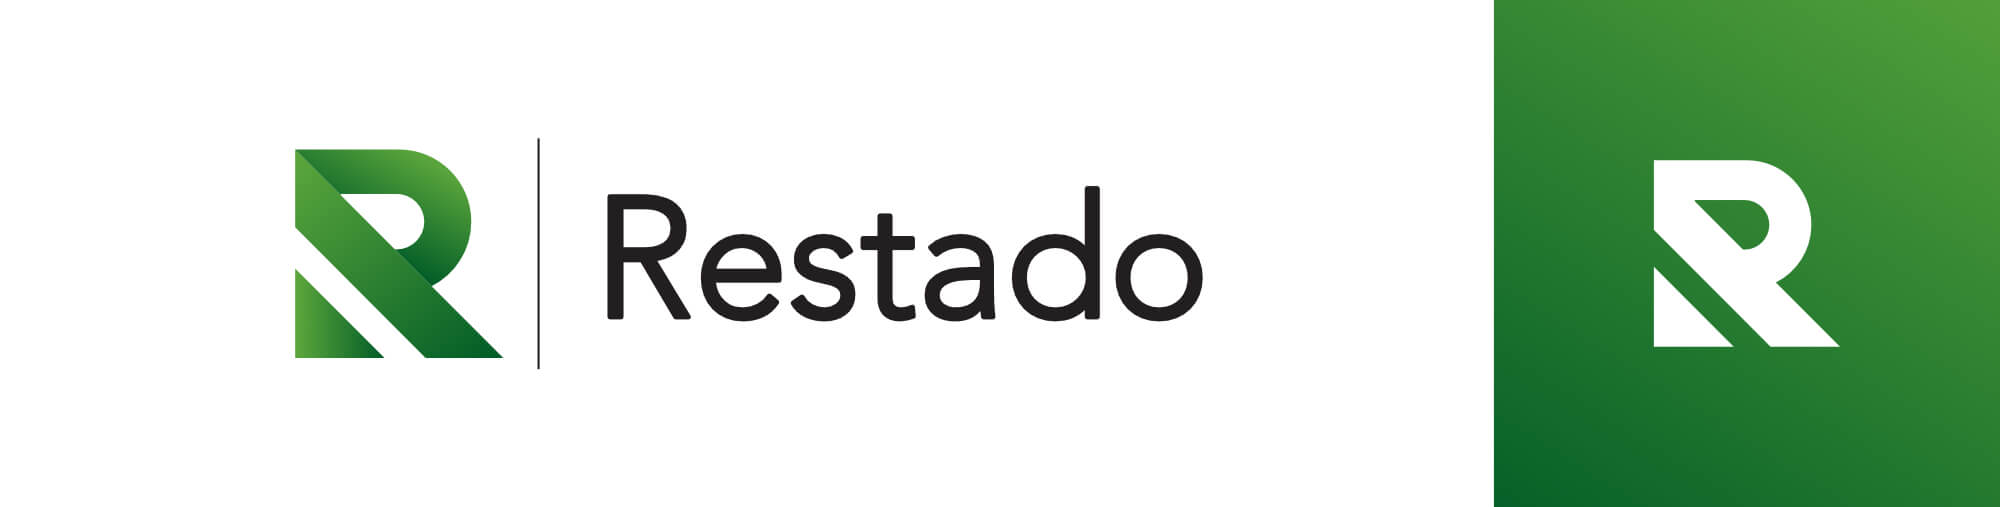 logo design and branding for restado by michael maleek djibril